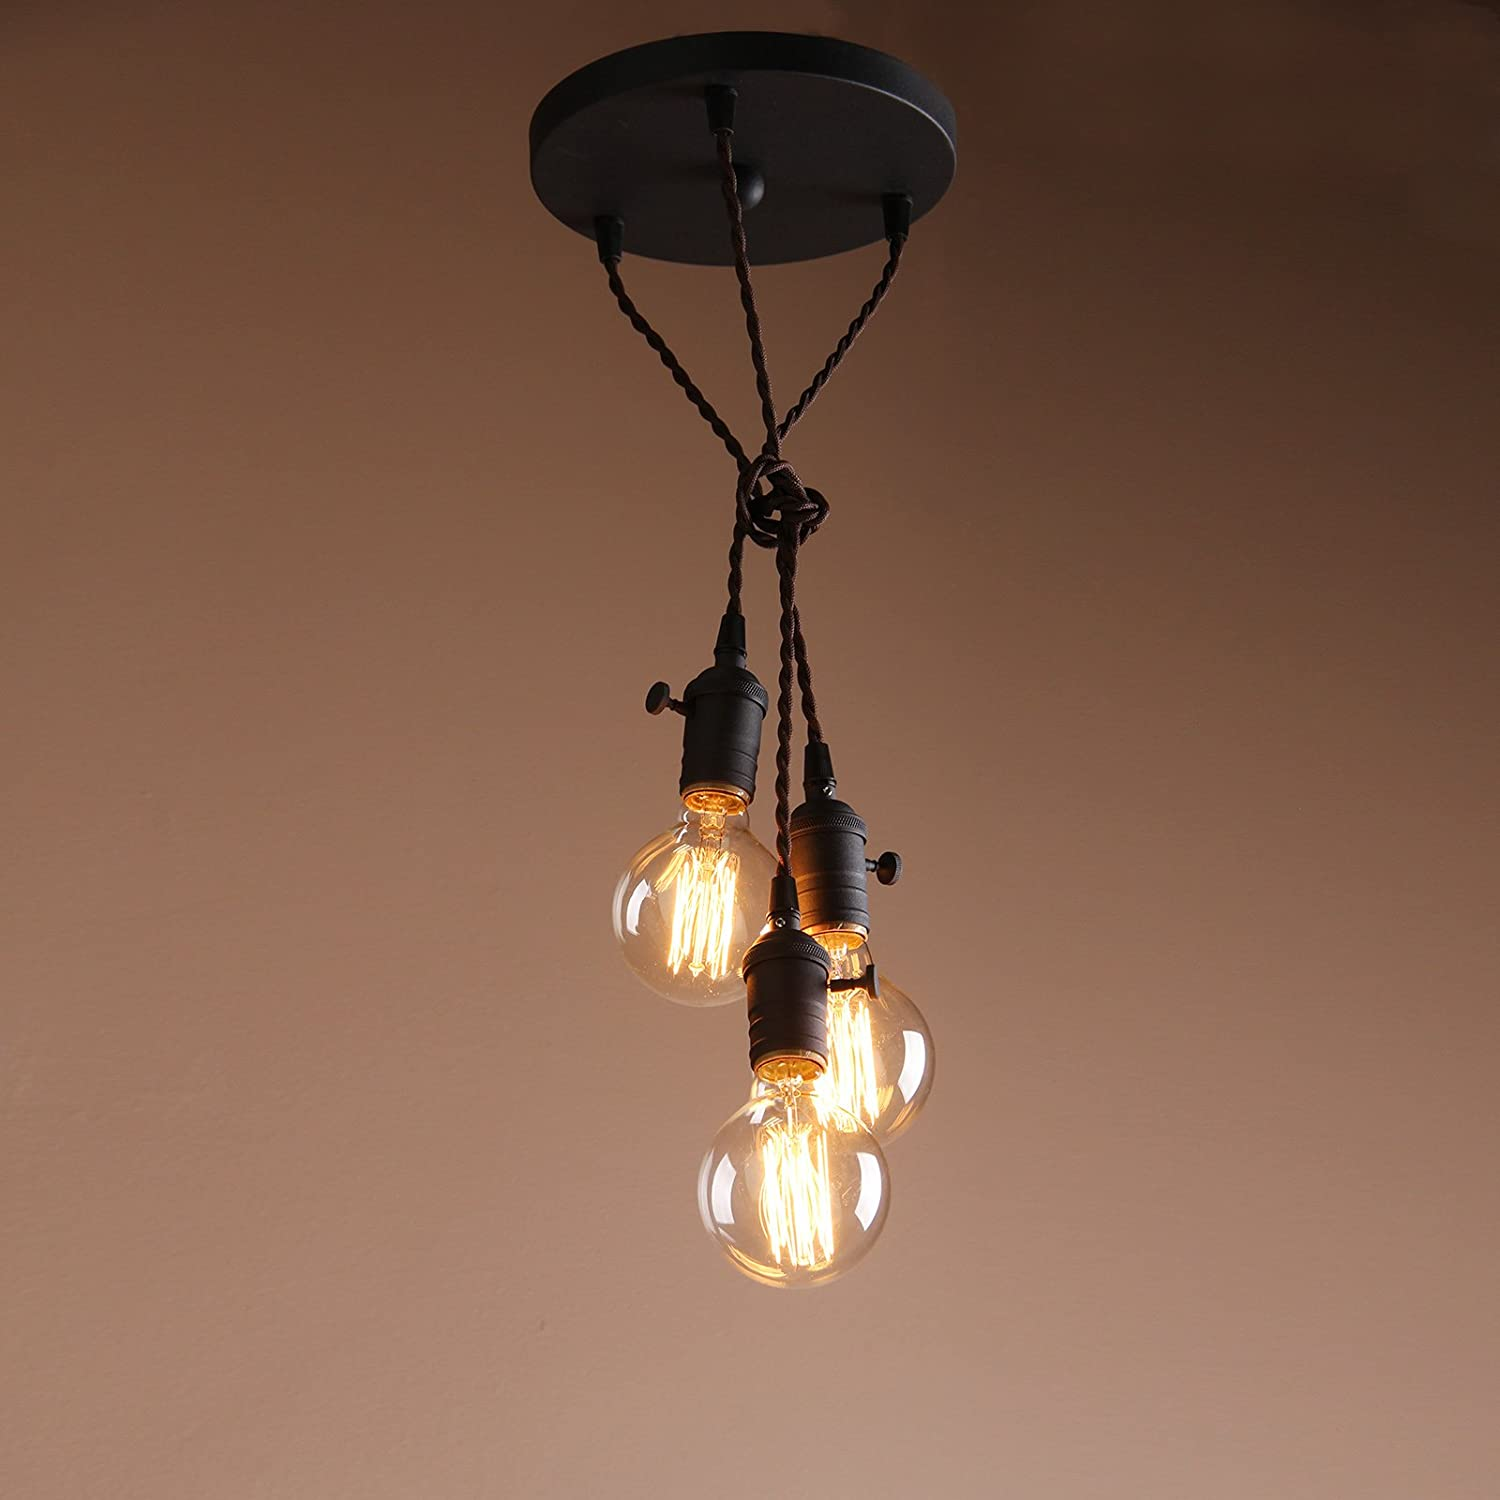 with dp pendant cluster mini amazon light antique permo bulb home textile lights com cord braided kitchen chandelier hanging